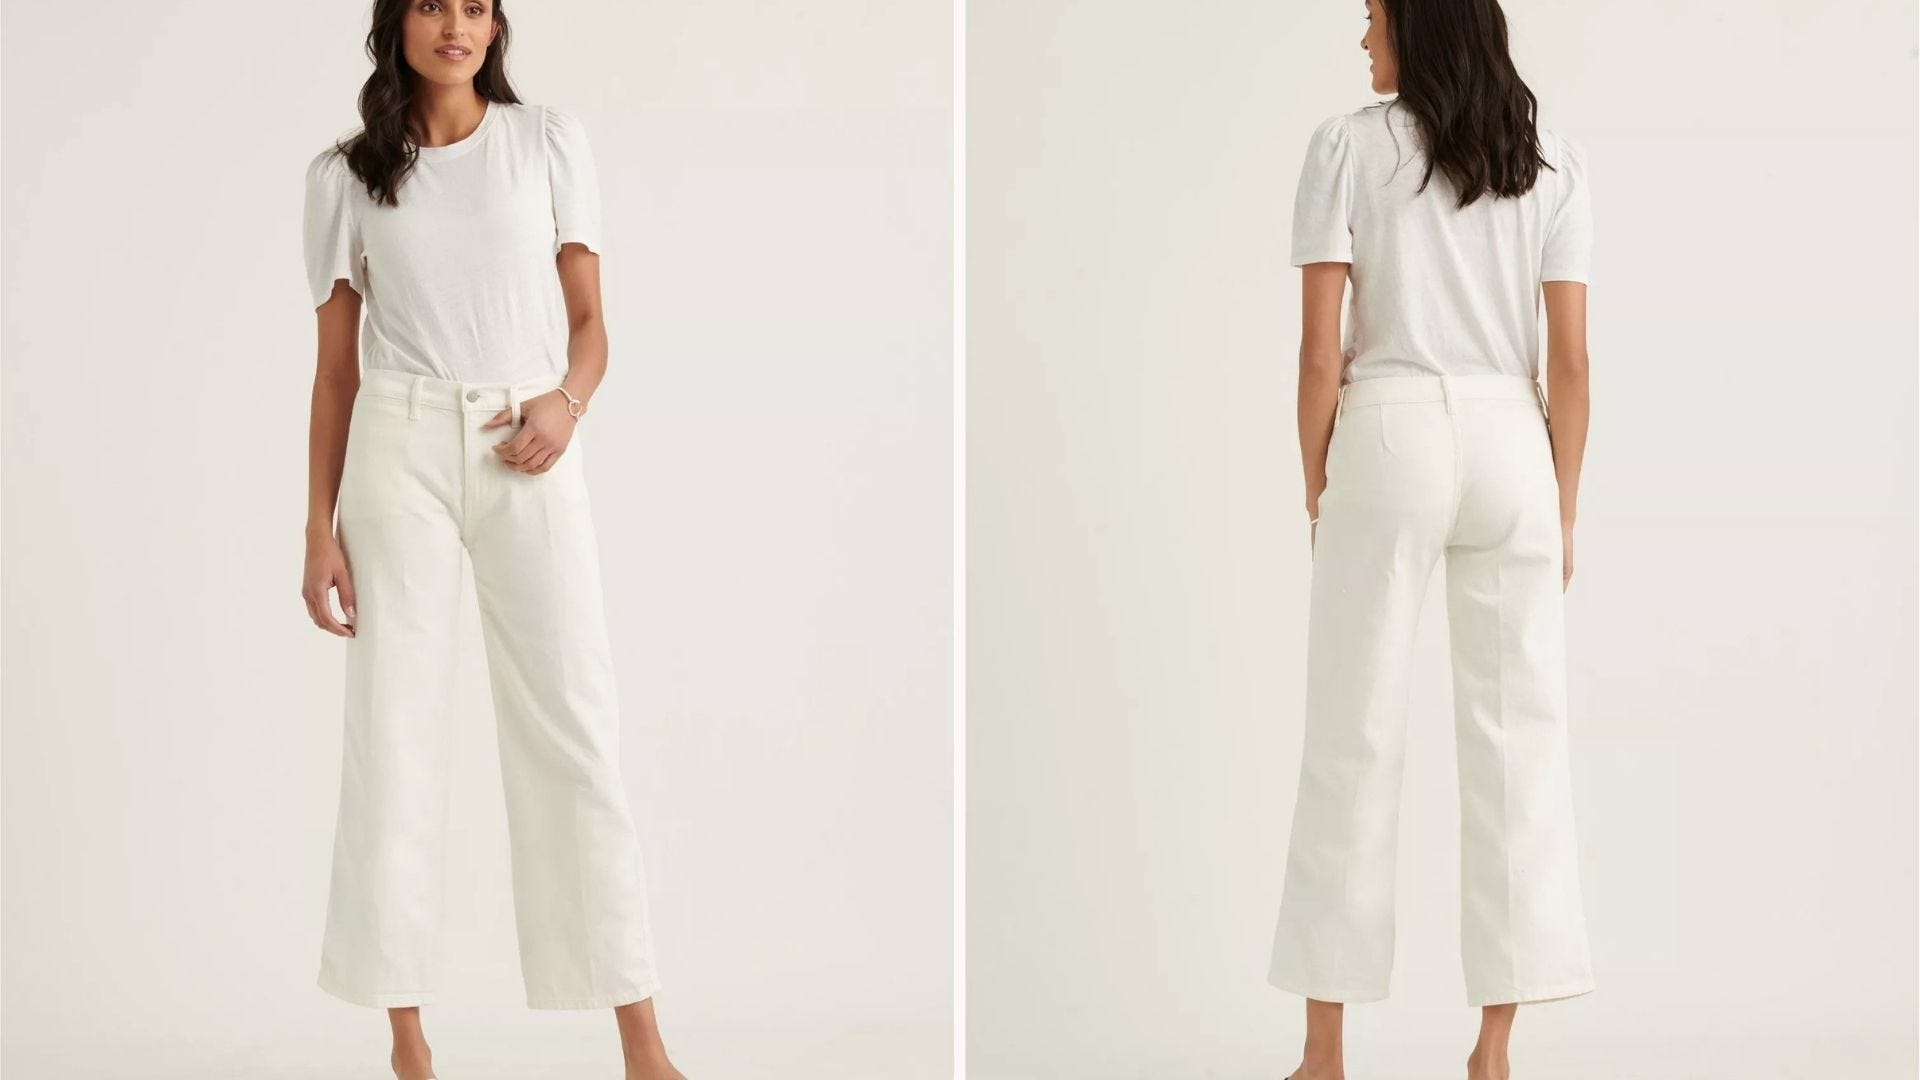 Front and back view of a woman wearing white crop pants and a white T-shirt